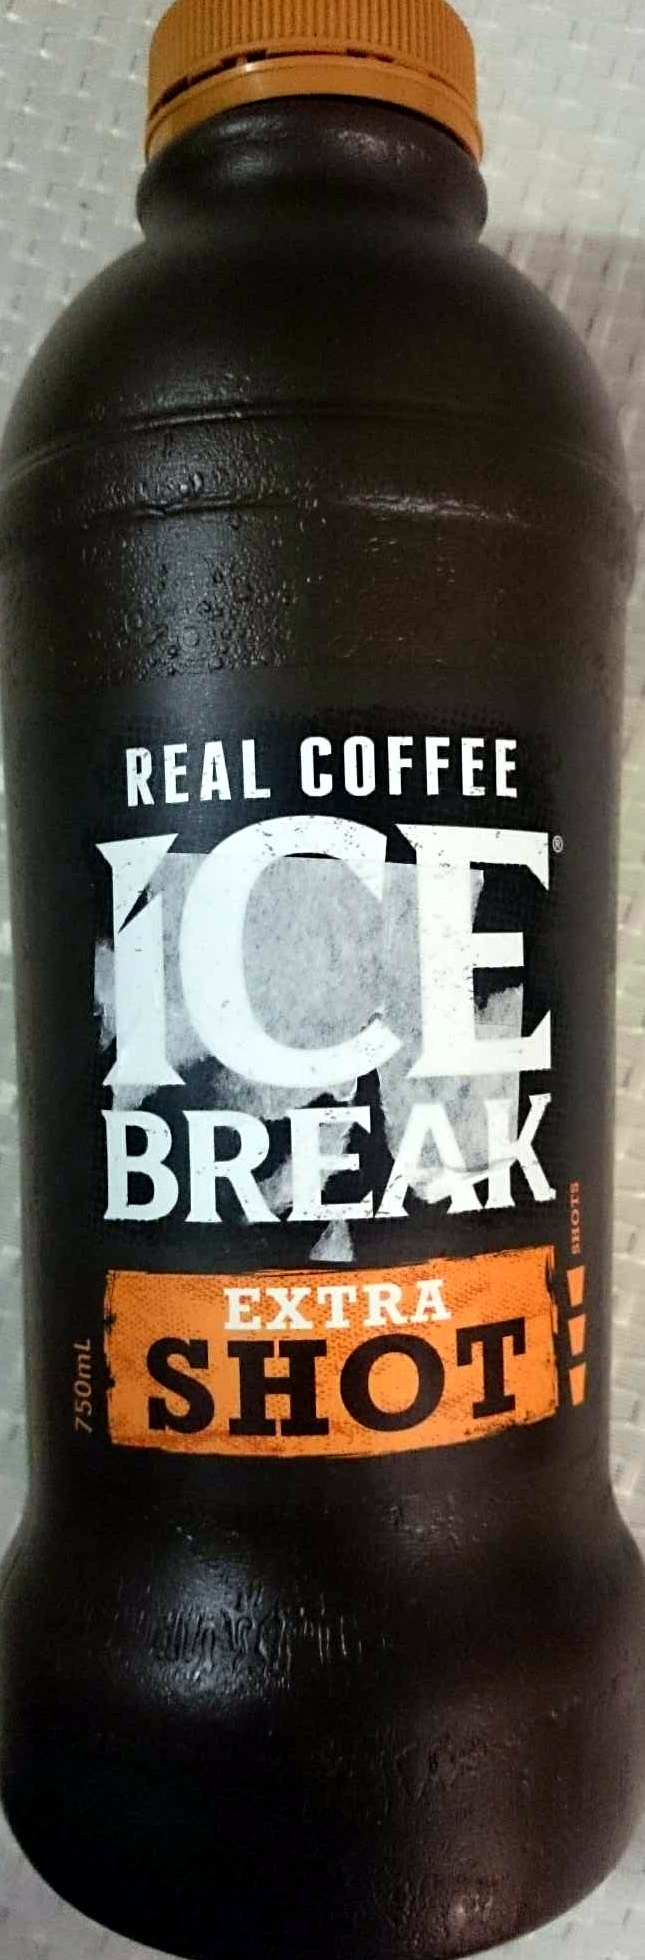 Real Coffee Ice Break Extra Shot - Product